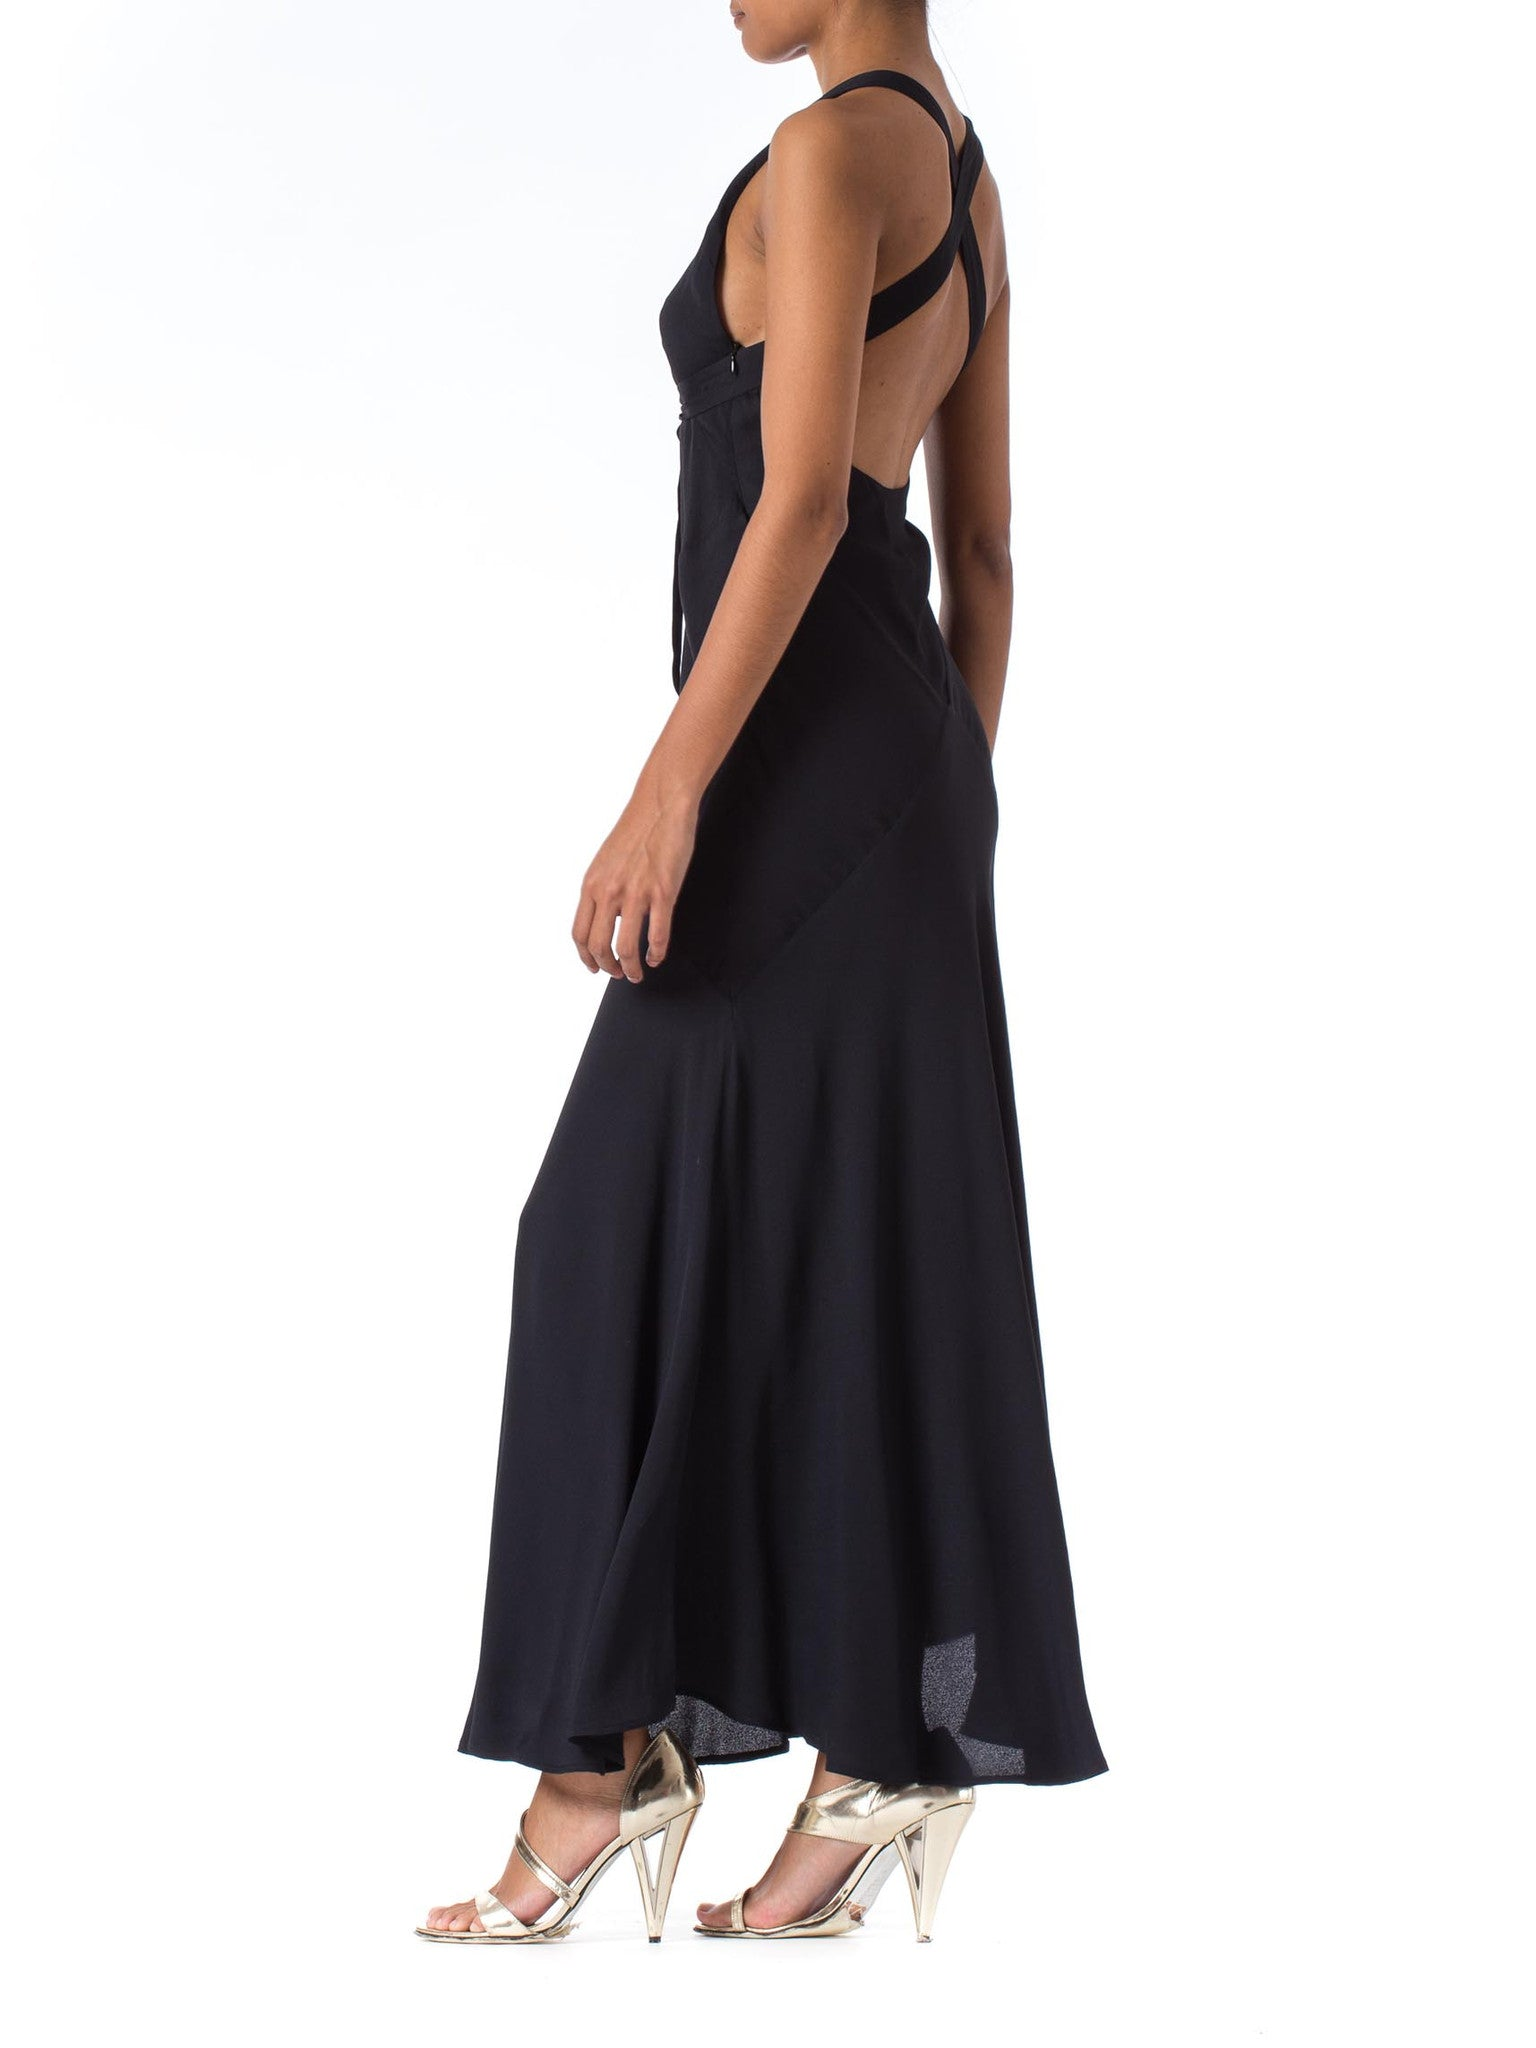 1990S Katharine Hamnett Black Bias Cut Rayon Crepe Backless Halter 30S Style Gown